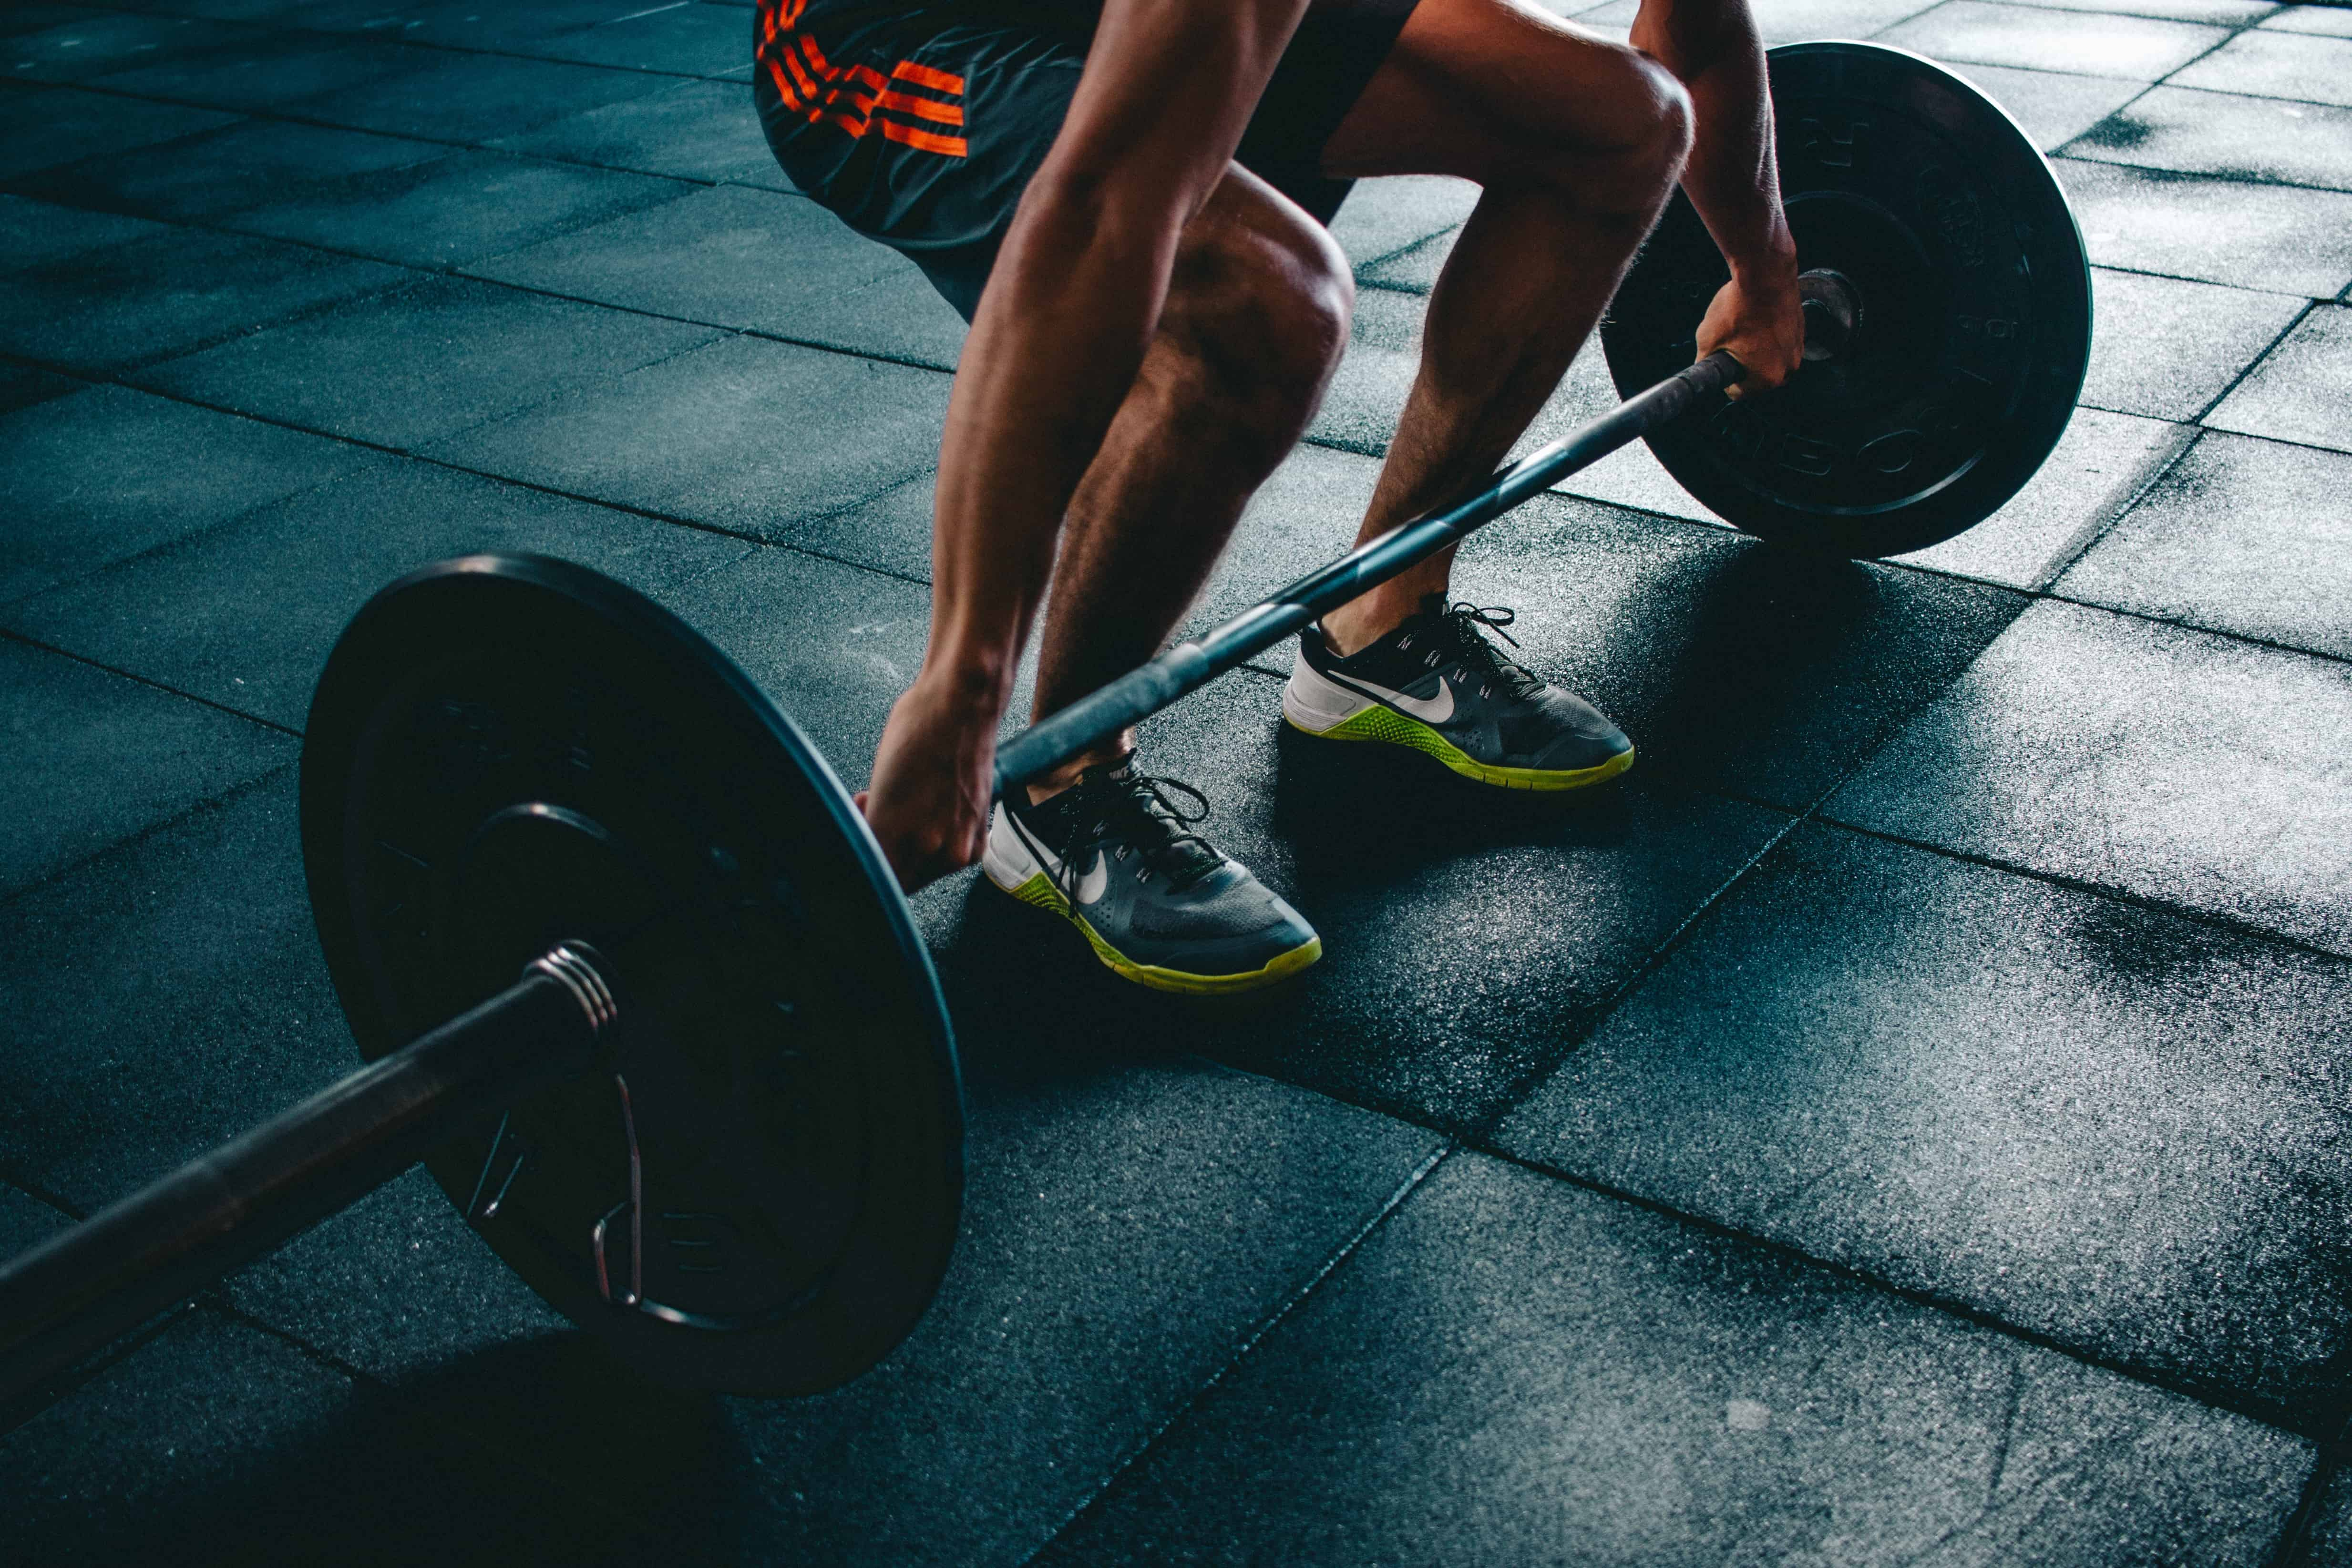 Squatting with weights to improve ski fitness